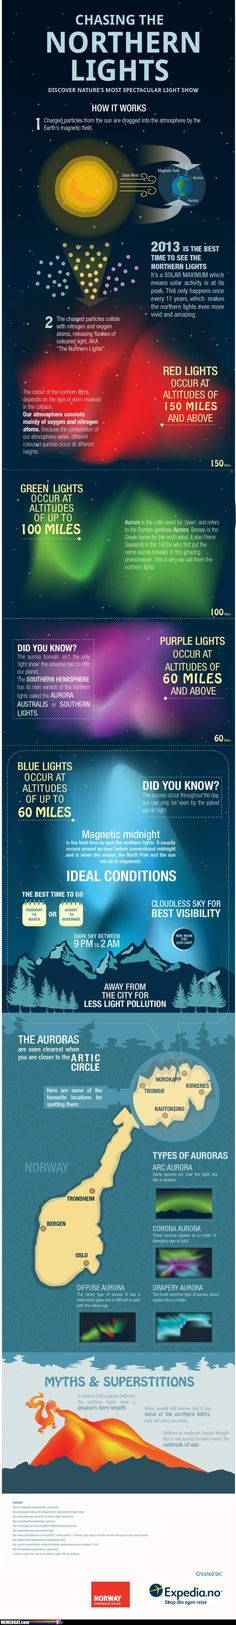 Chasing The Northern Lights - How It Works. Infographic